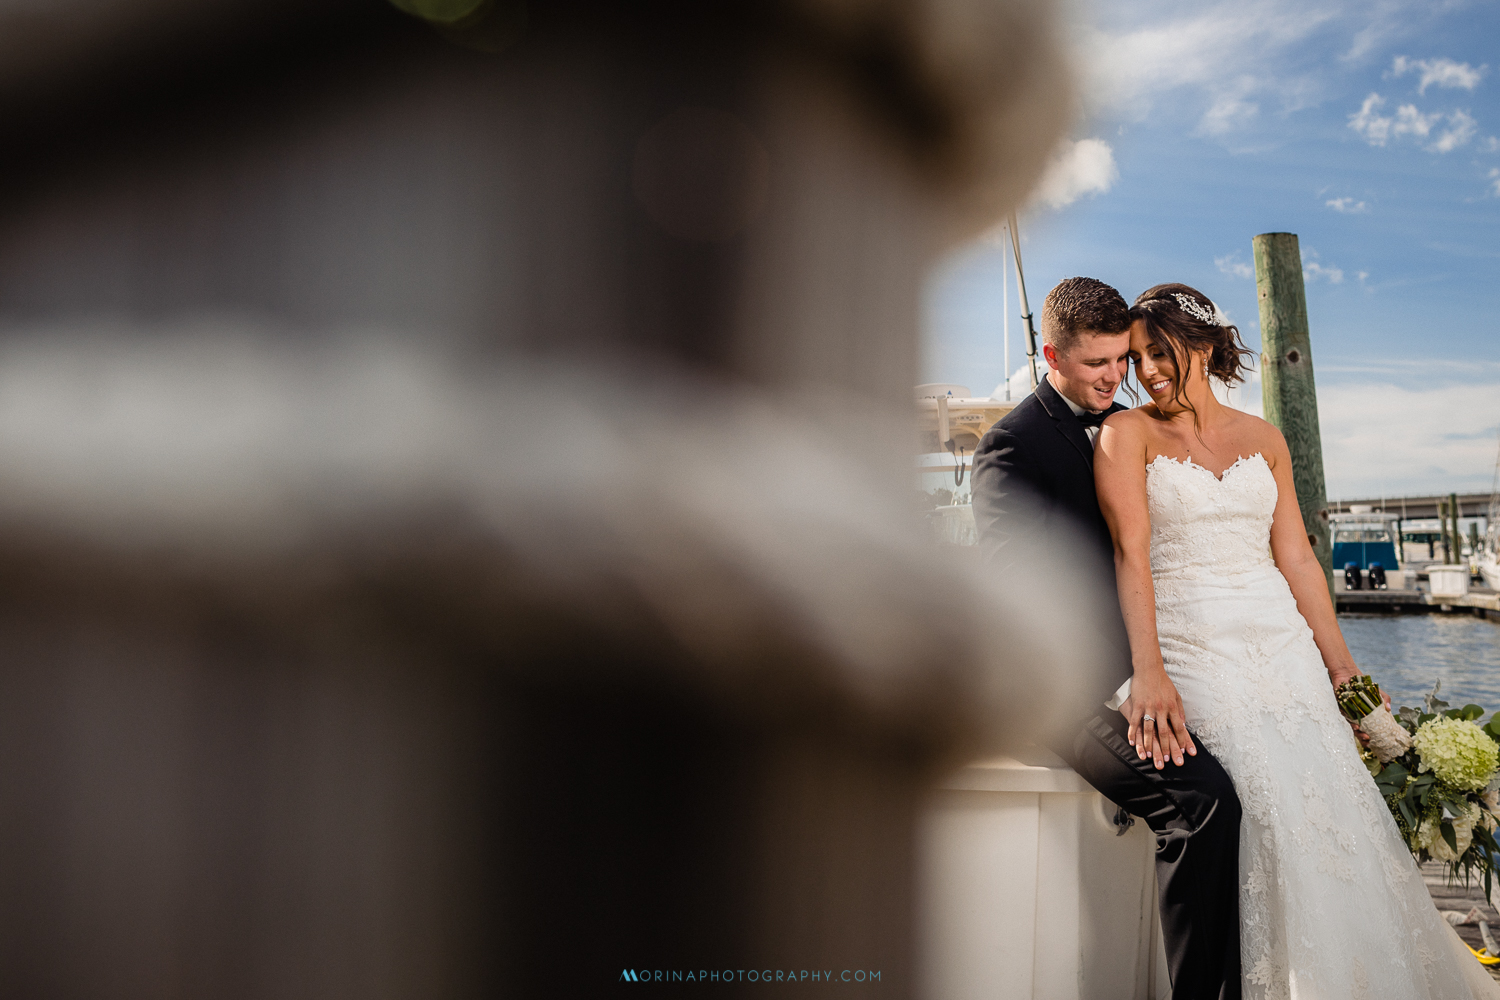 Amanda & Austin wedding at Crystal Point Yacht Club 52.jpg